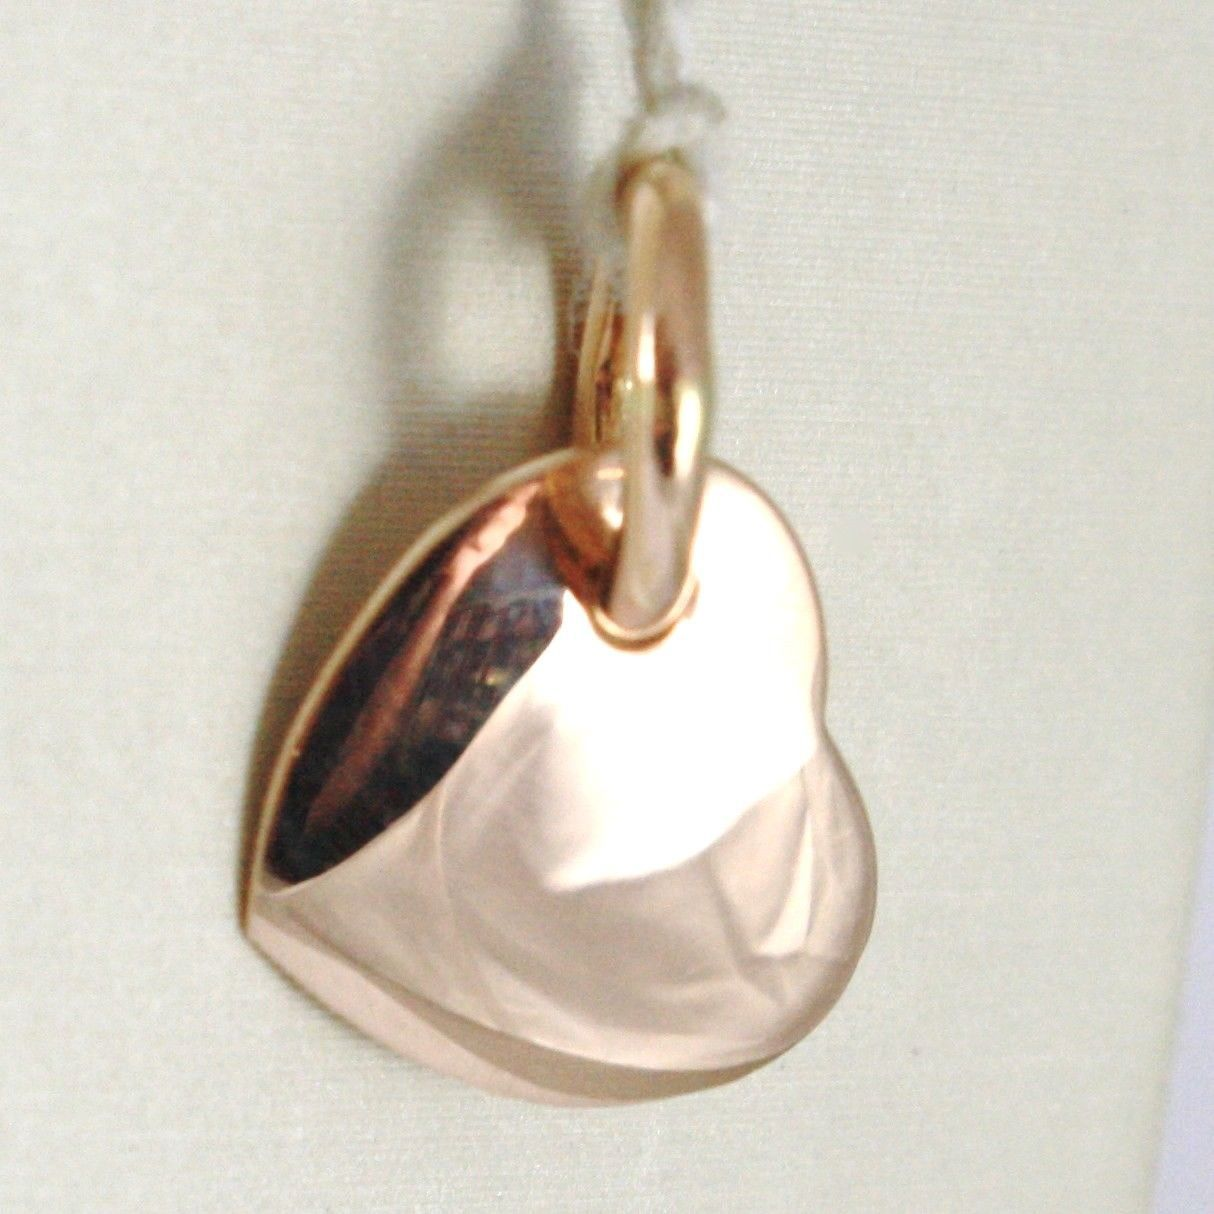 YELLOW GOLD PENDANT, PINK 0,5 WHITE 750 18K, HEART, SOLID, ENGRAVABLE